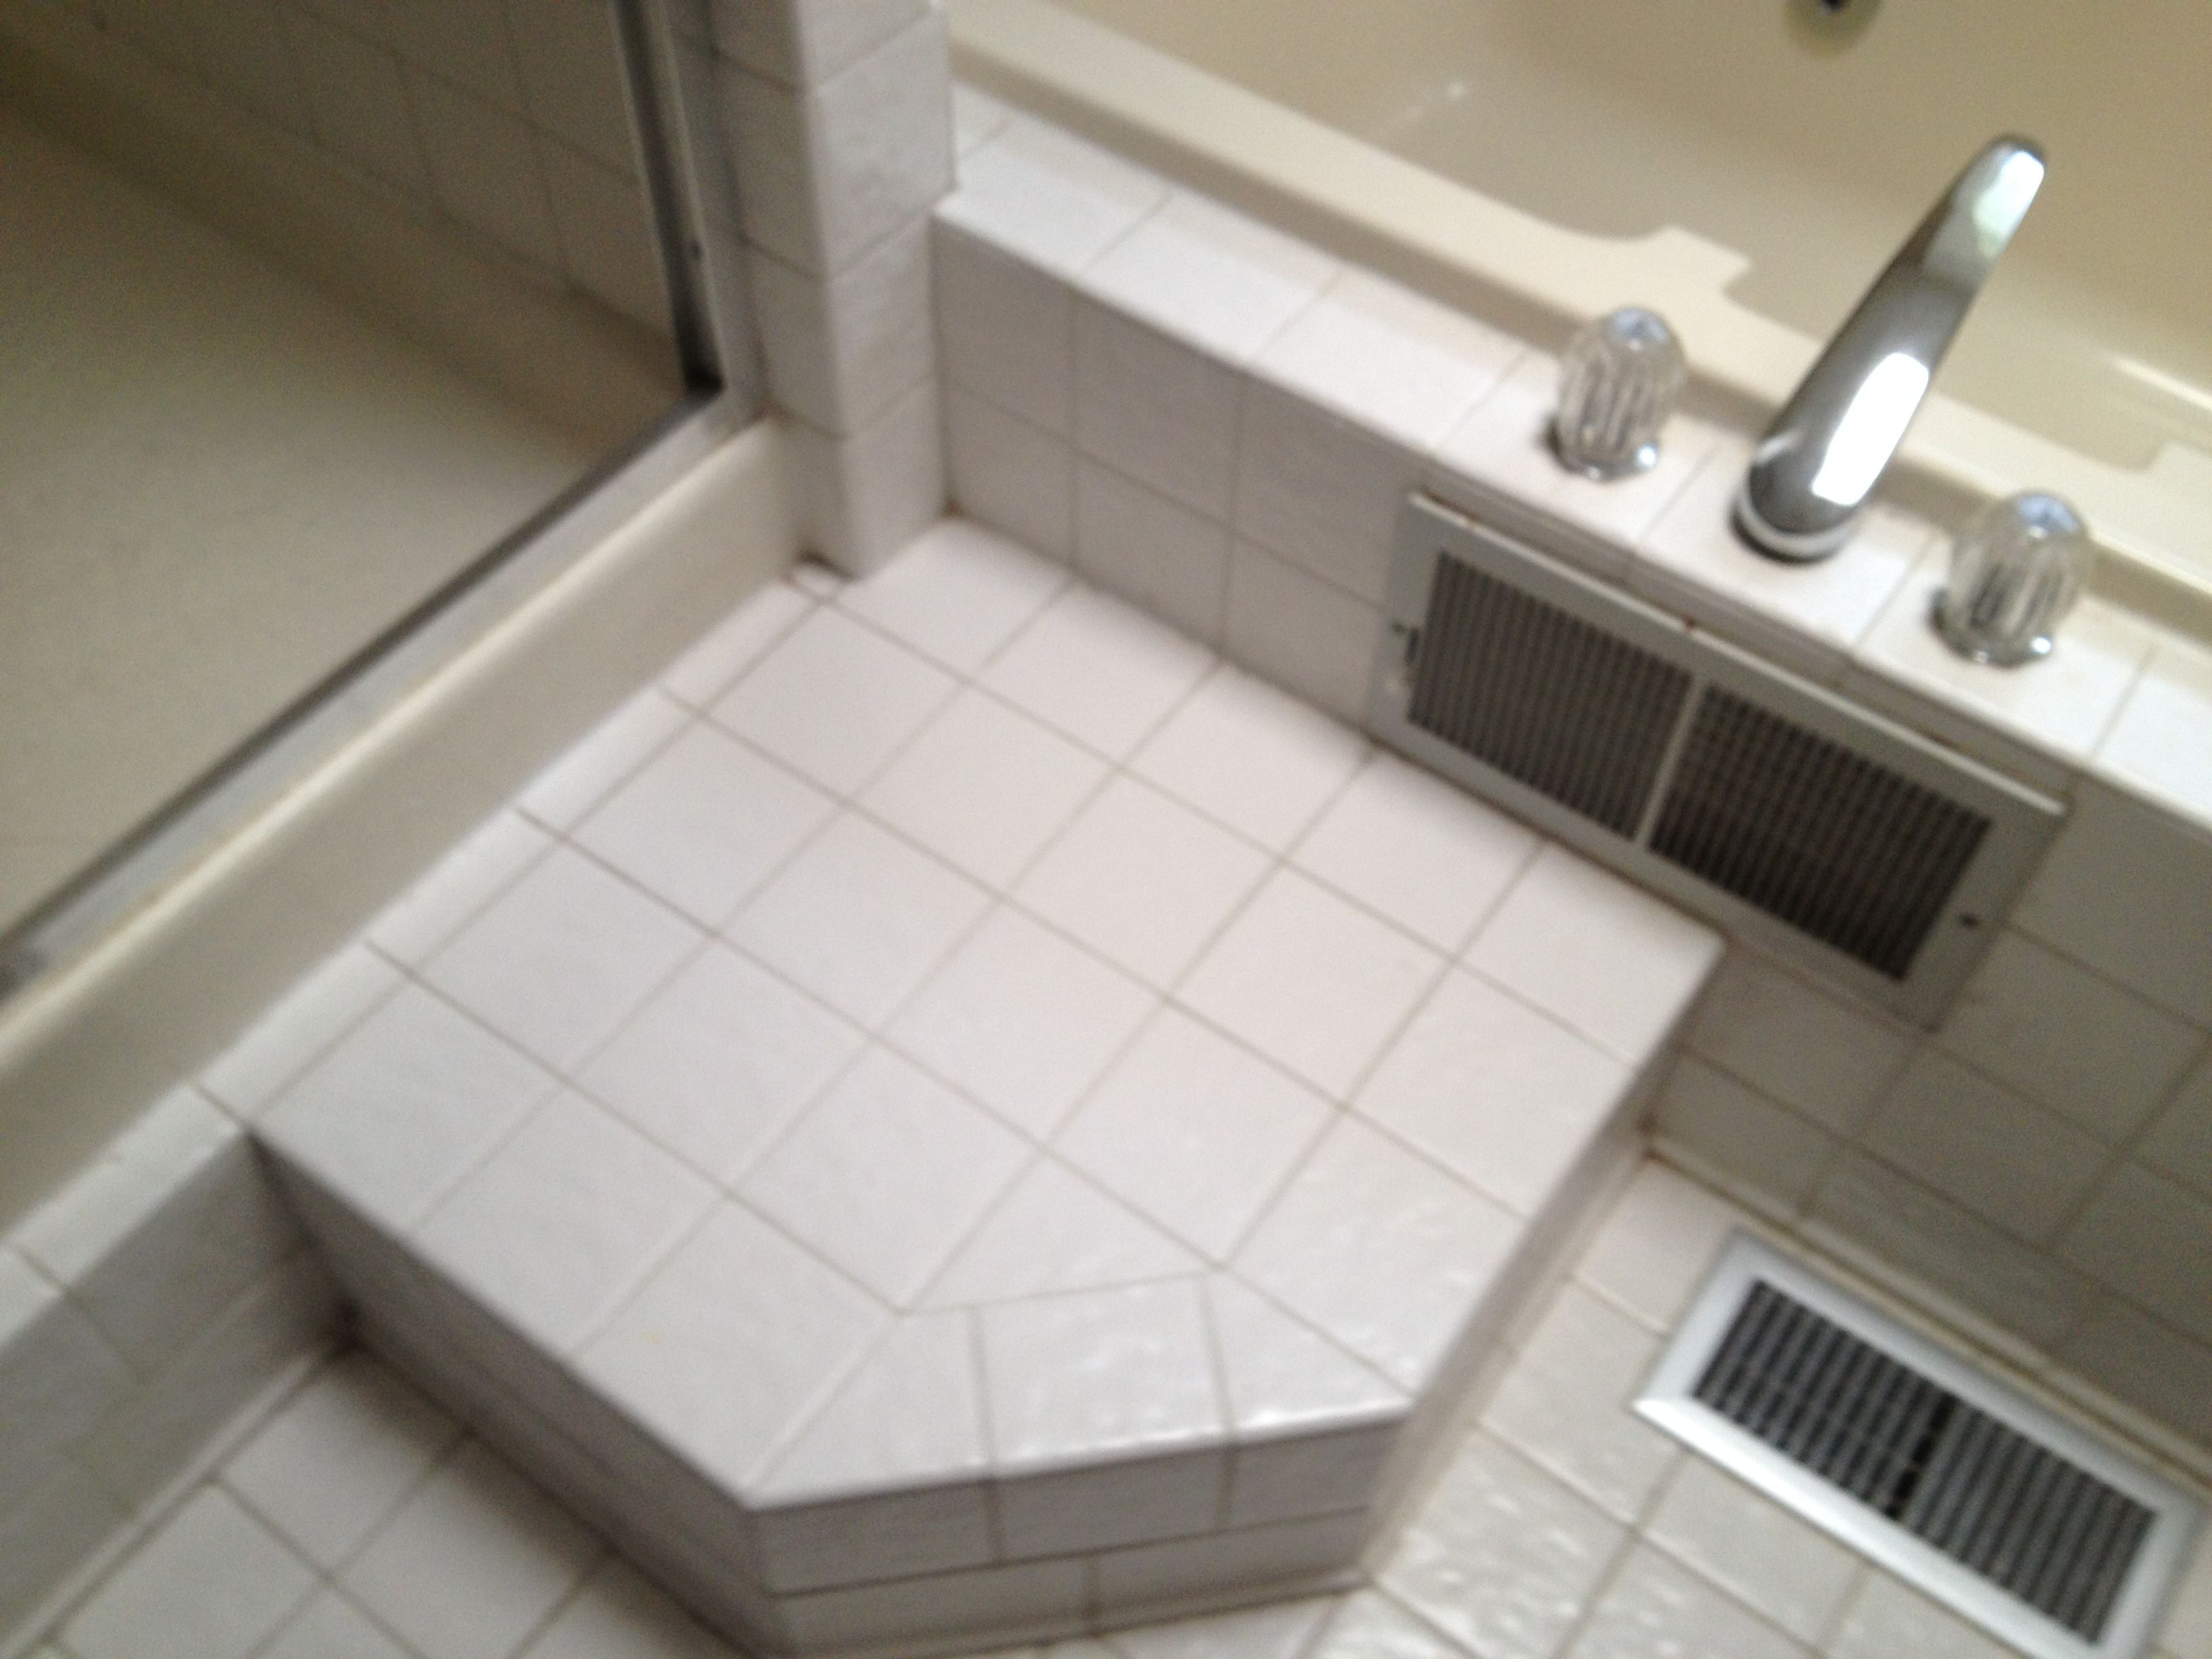 Step up into shower or step over into whirlpool tub. Questionable ...